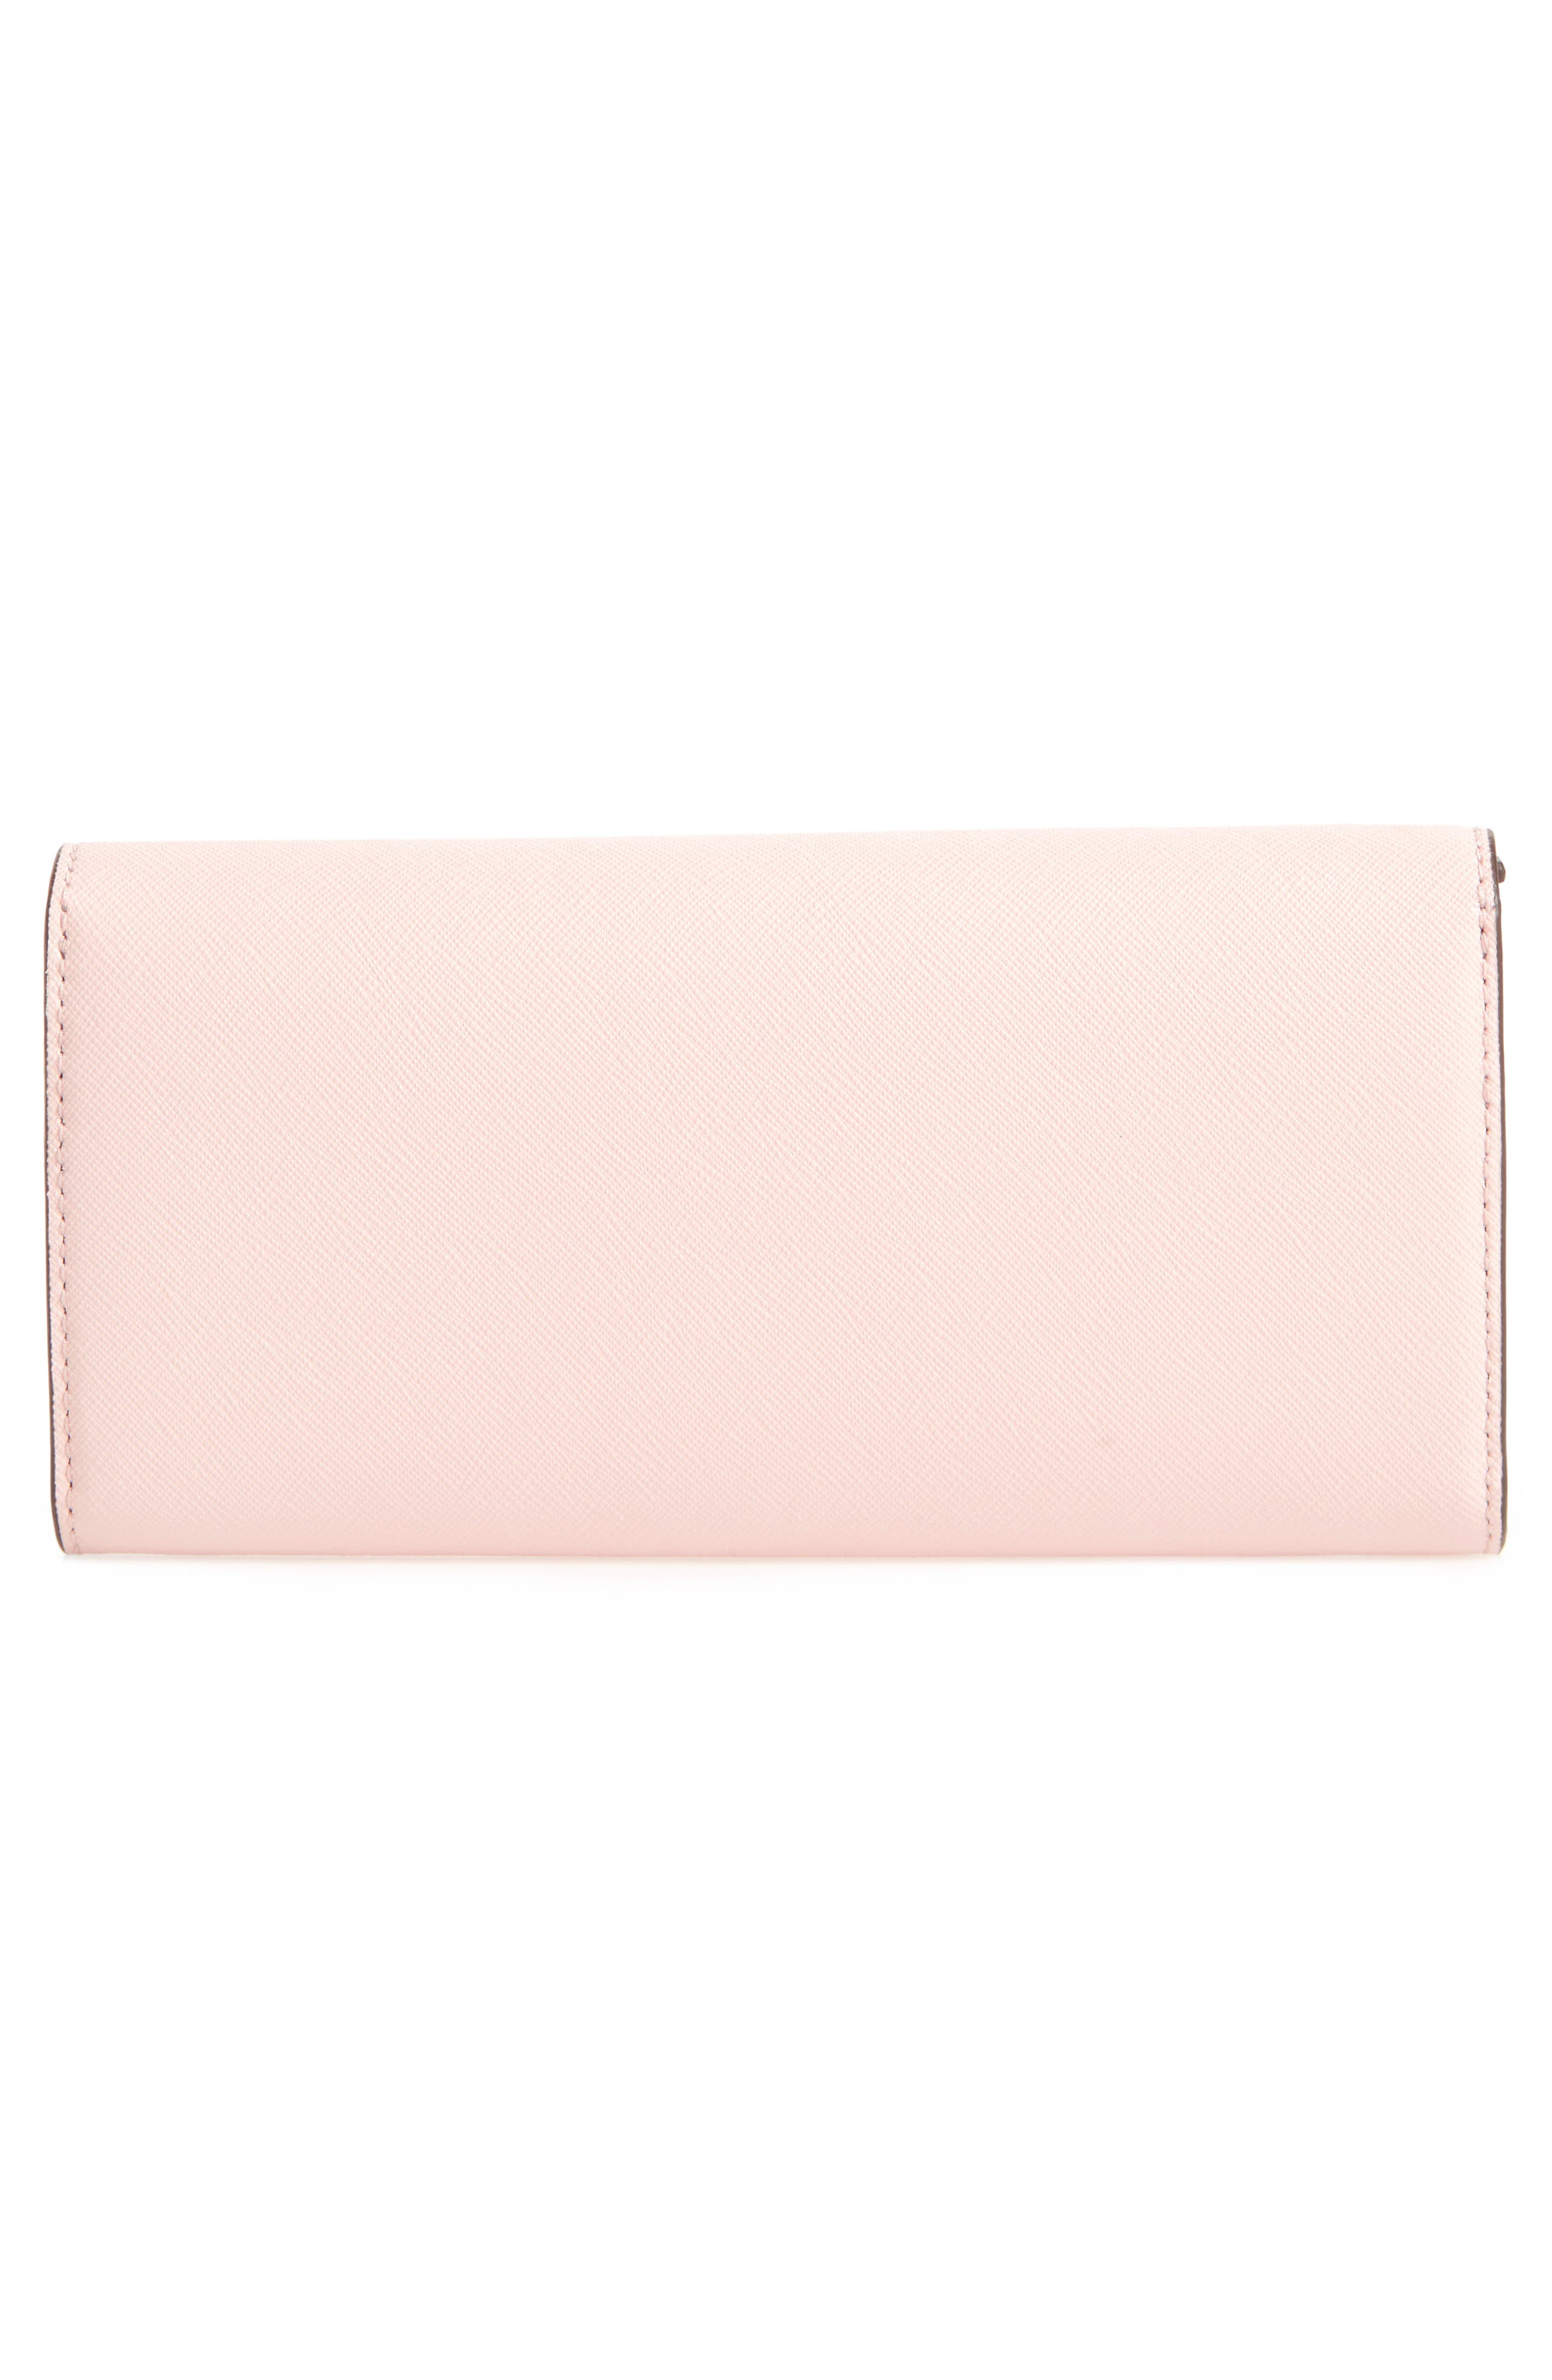 Robinson Envelope Continental Wallet,                             Alternate thumbnail 4, color,                             Pale Apricot / Royal Navy